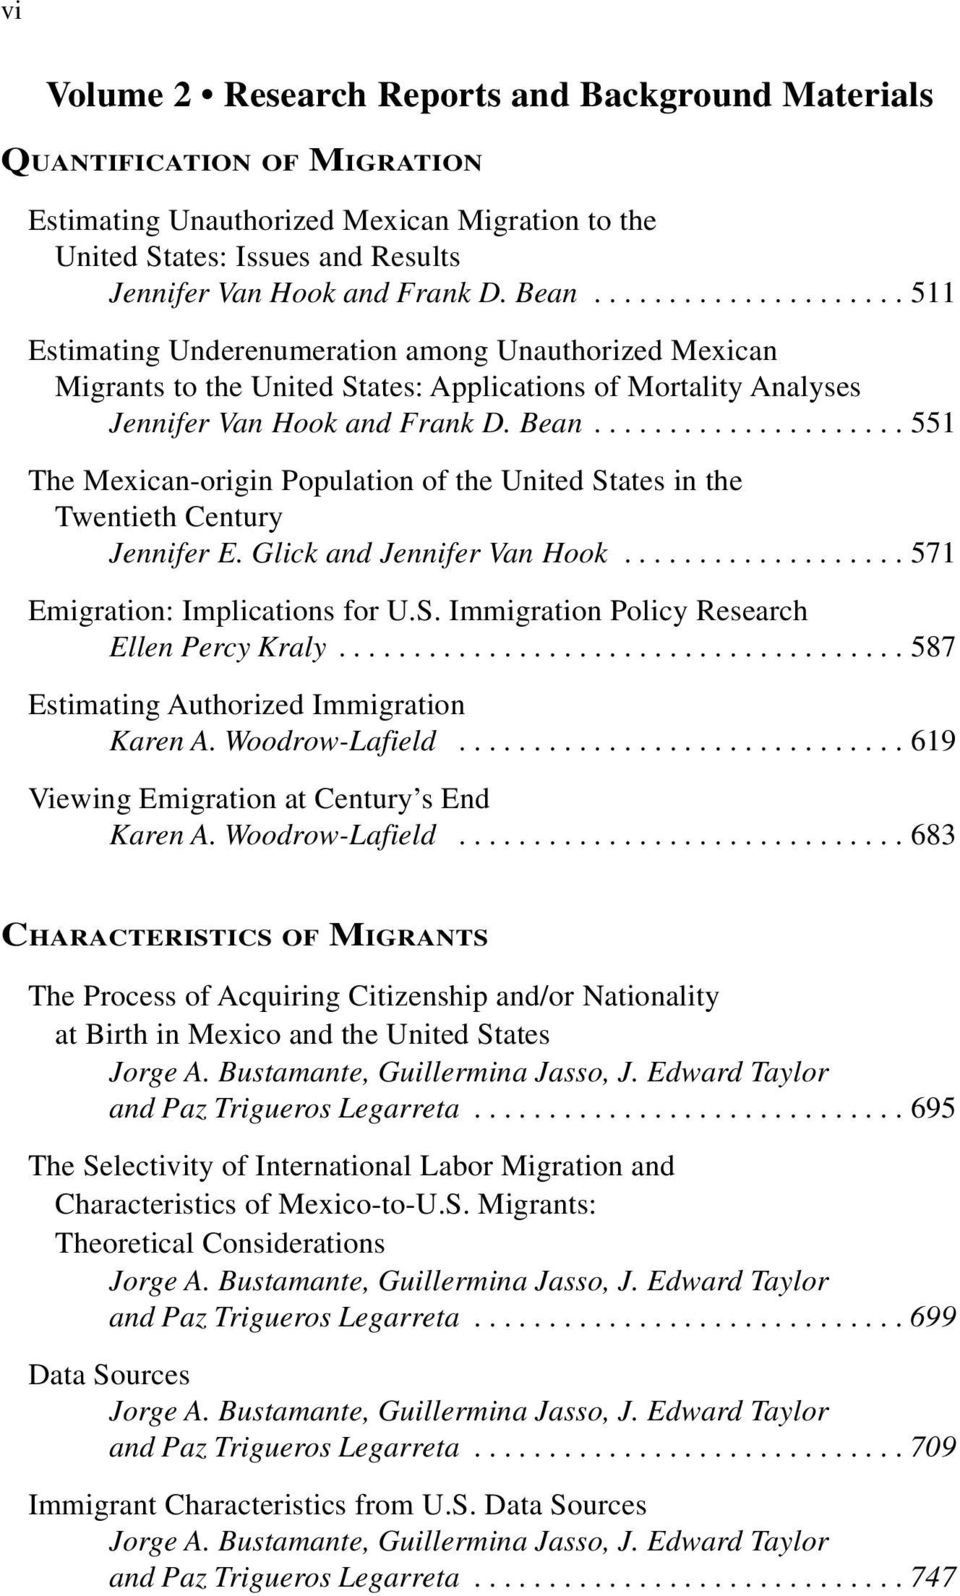 .................... 551 The Mexican-origin Population of the United States in the Twentieth Century Jennifer E. Glick and Jennifer Van Hook................... 571 Emigration: Implications for U.S. Immigration Policy Research Ellen Percy Kraly.